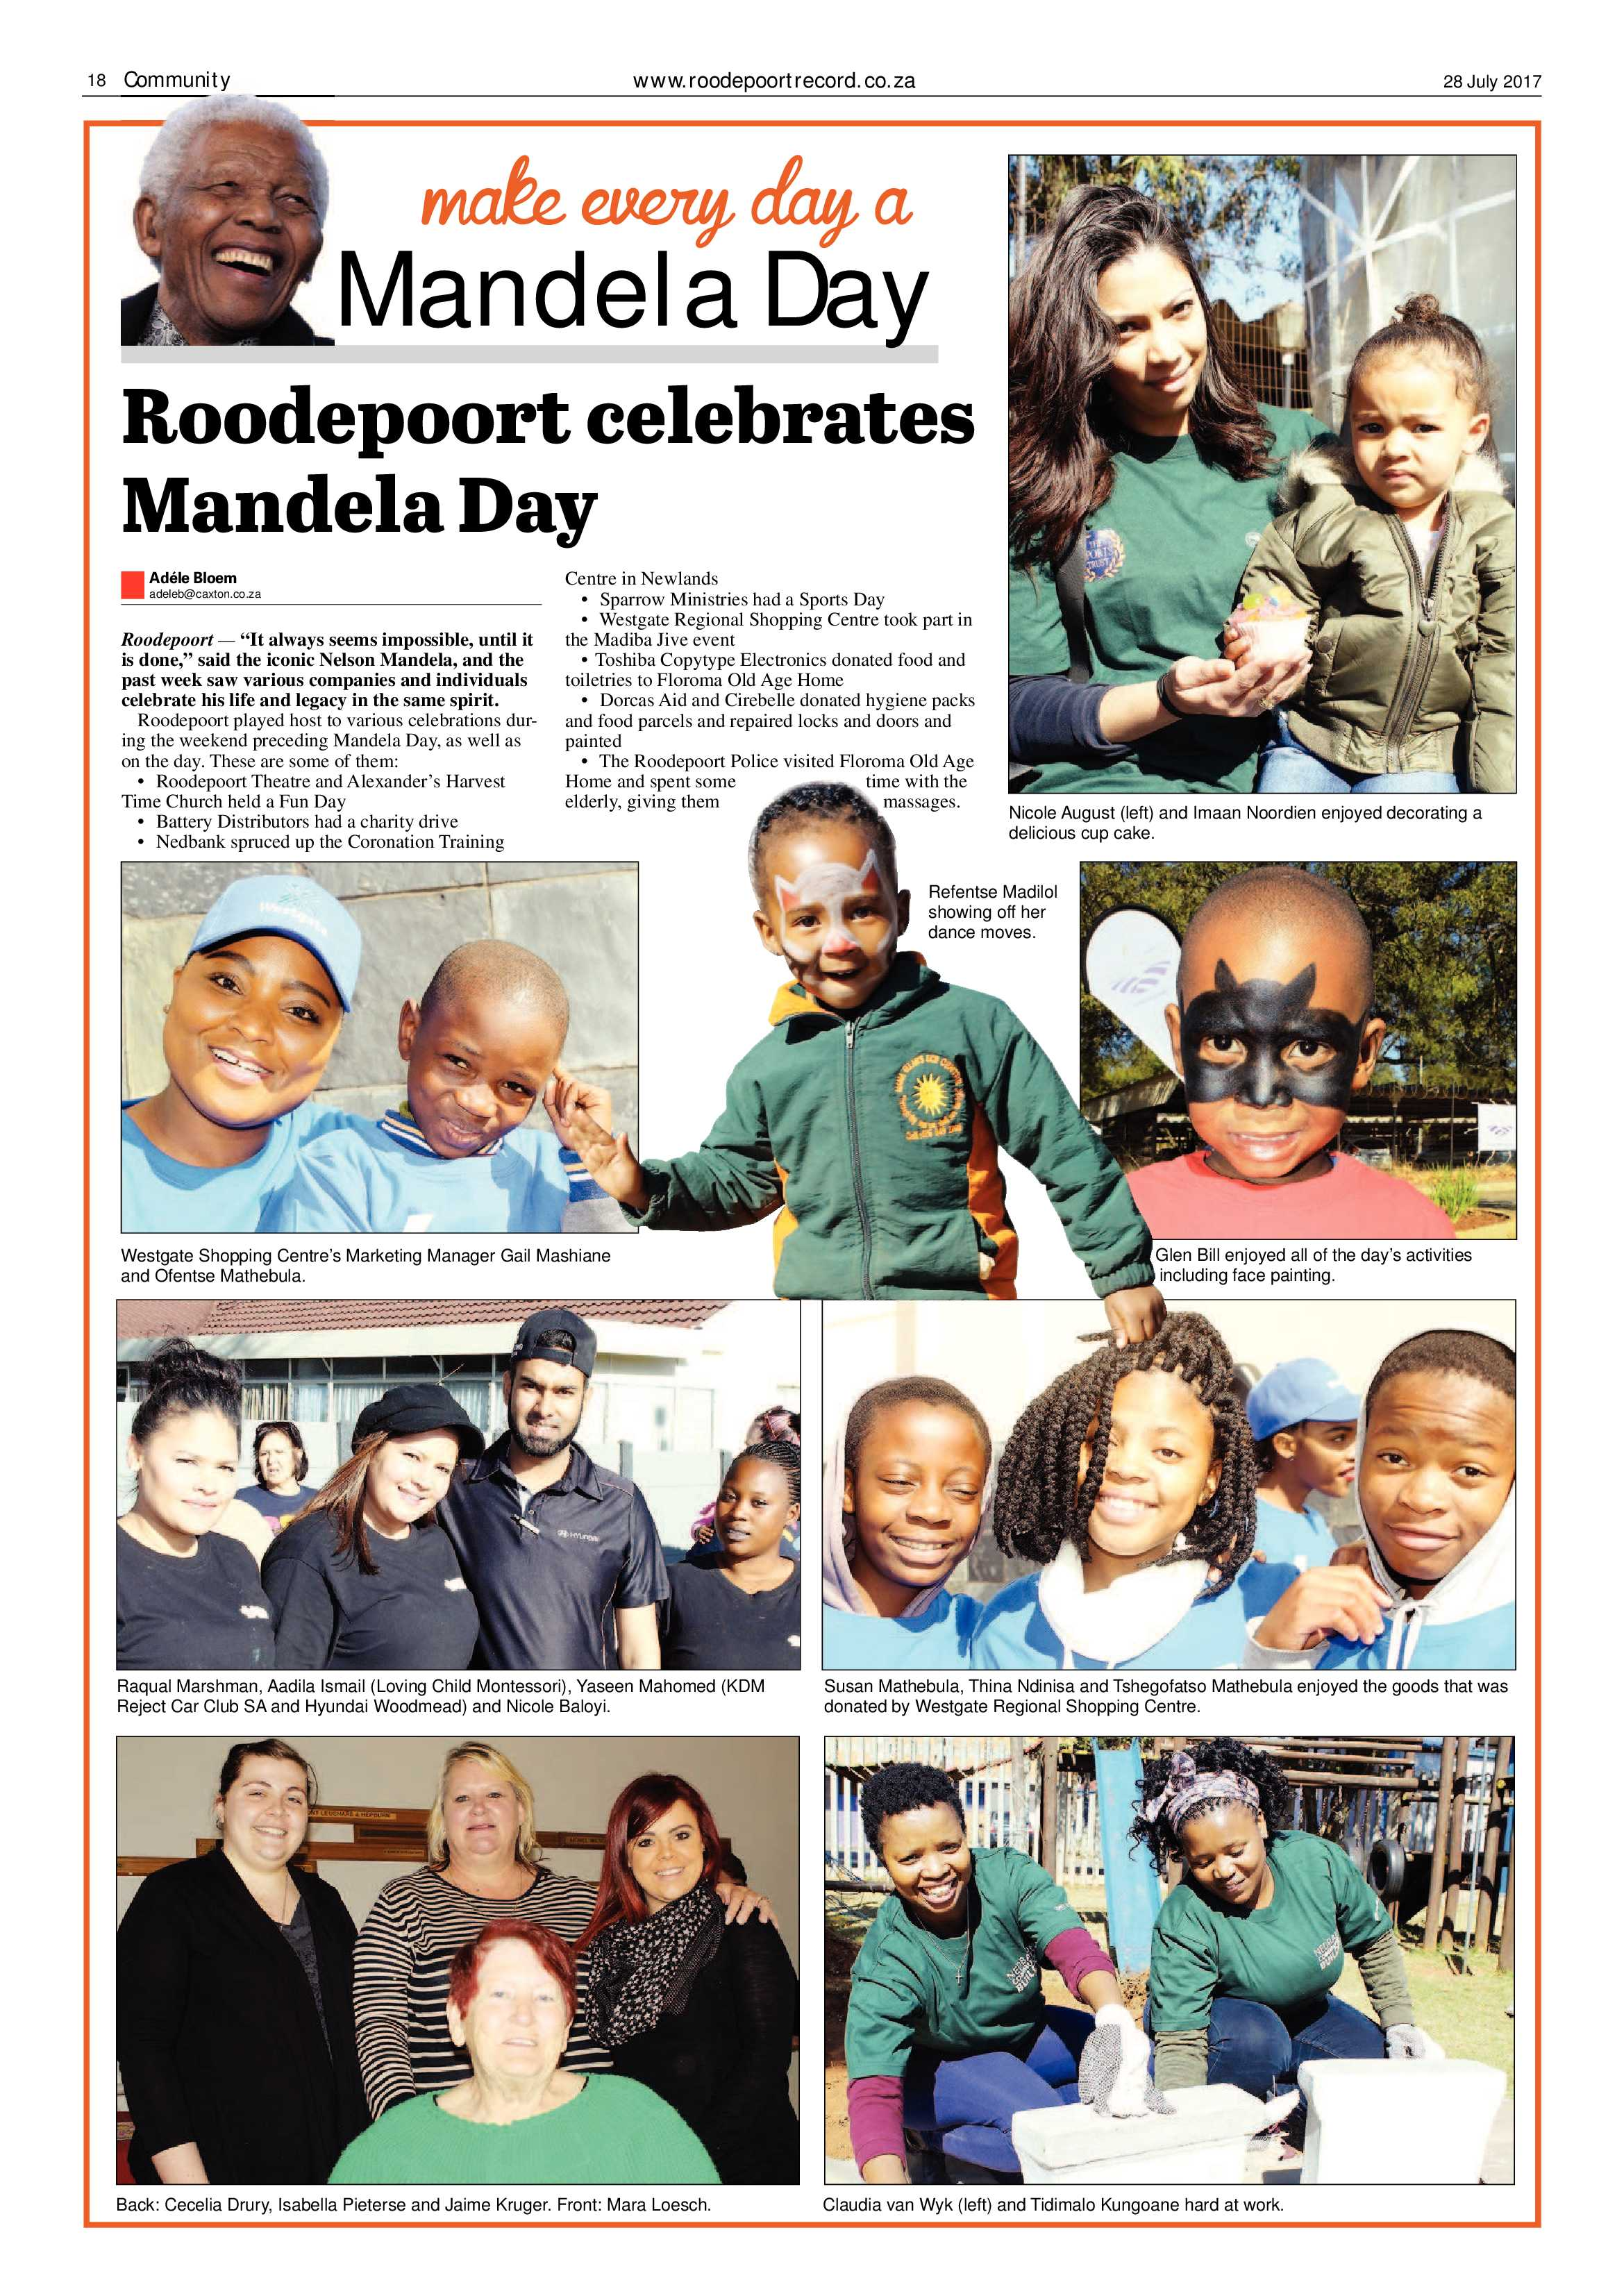 roodepoort-record-28-july-2017-epapers-page-18